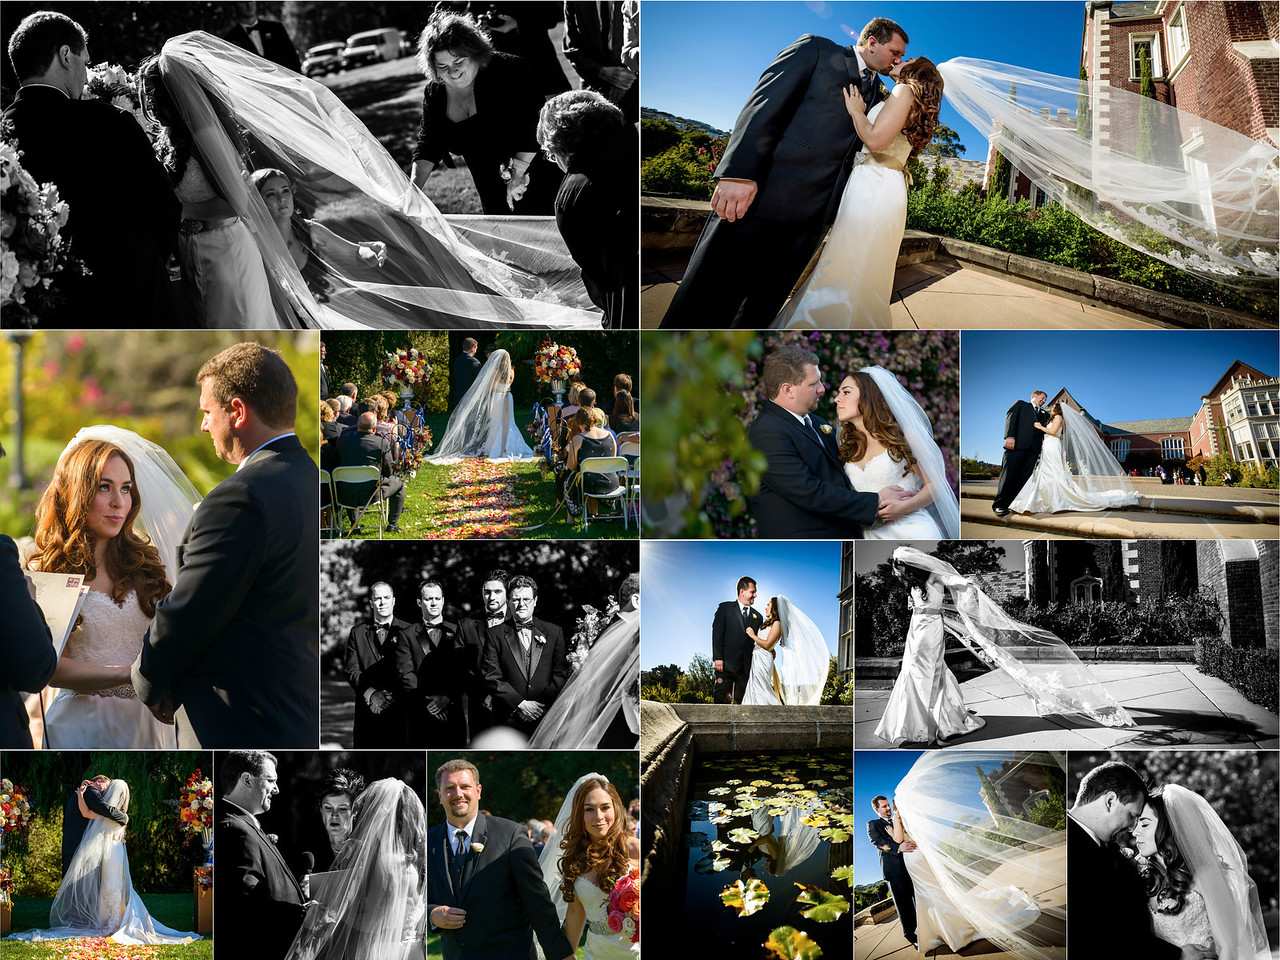 Danielle_and_Tony_Wedding_Photography_4x6_Photo_Board_03